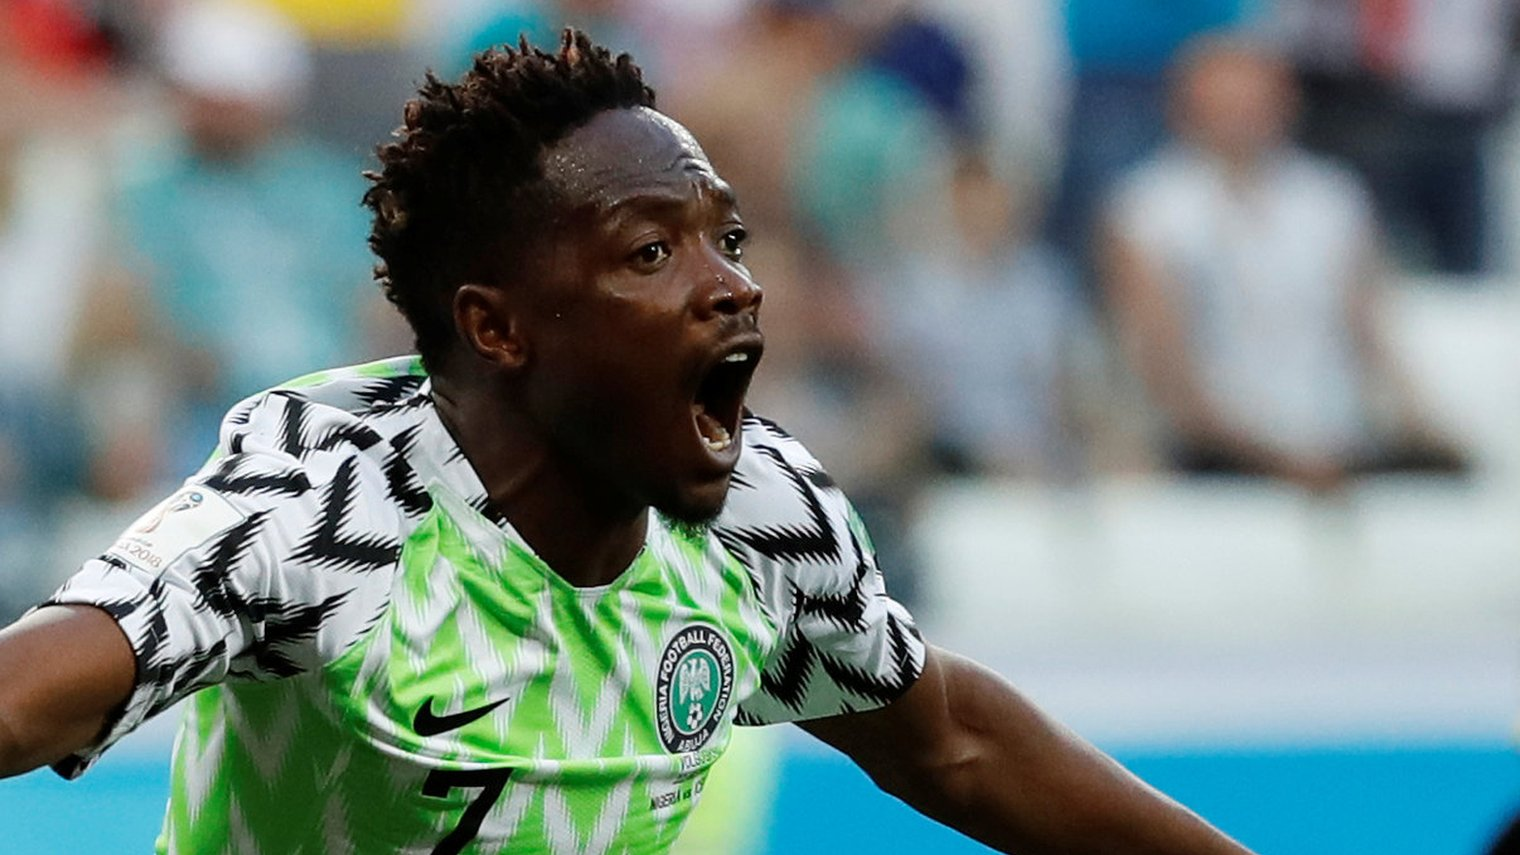 World Cup 2018: Ahmed Musa exquisite touch and finish puts Nigeria ahead